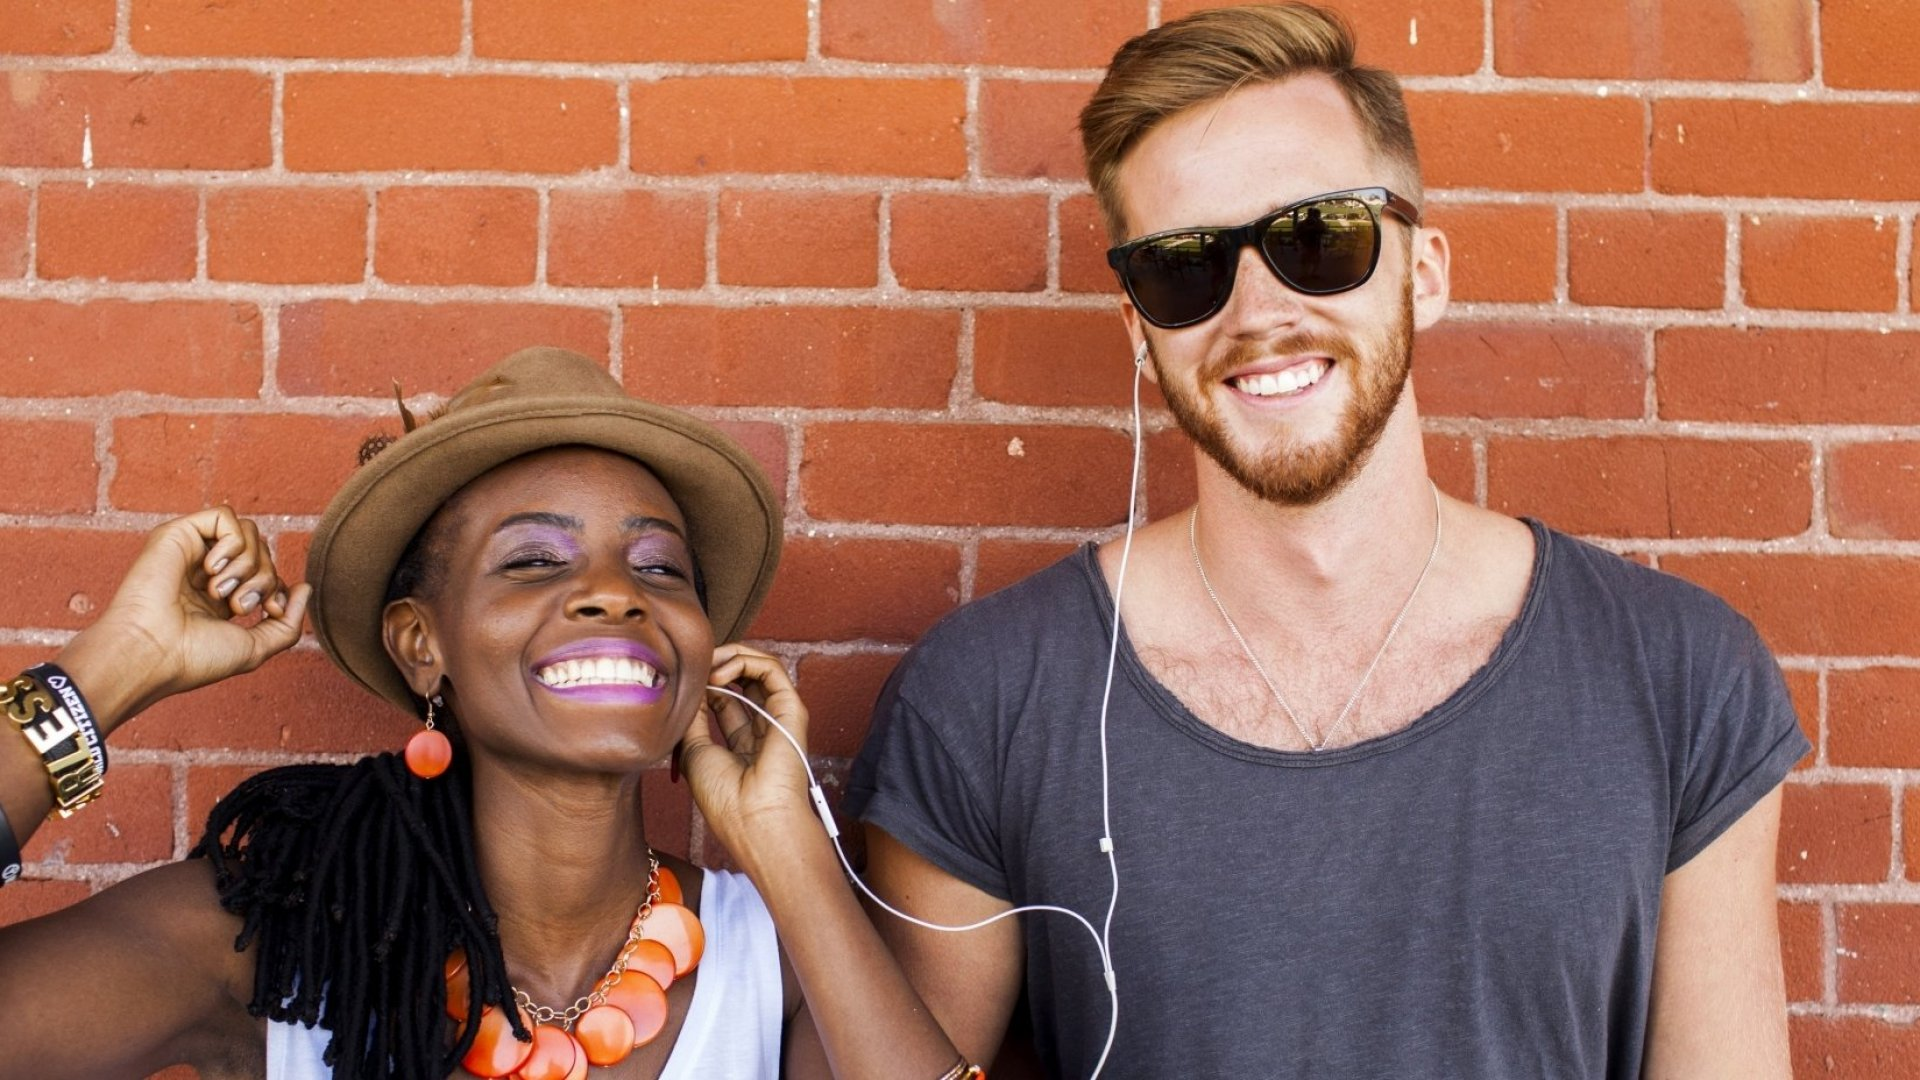 Study: This Is the Kind of Music You Should Play at Work to Boost Collaboration